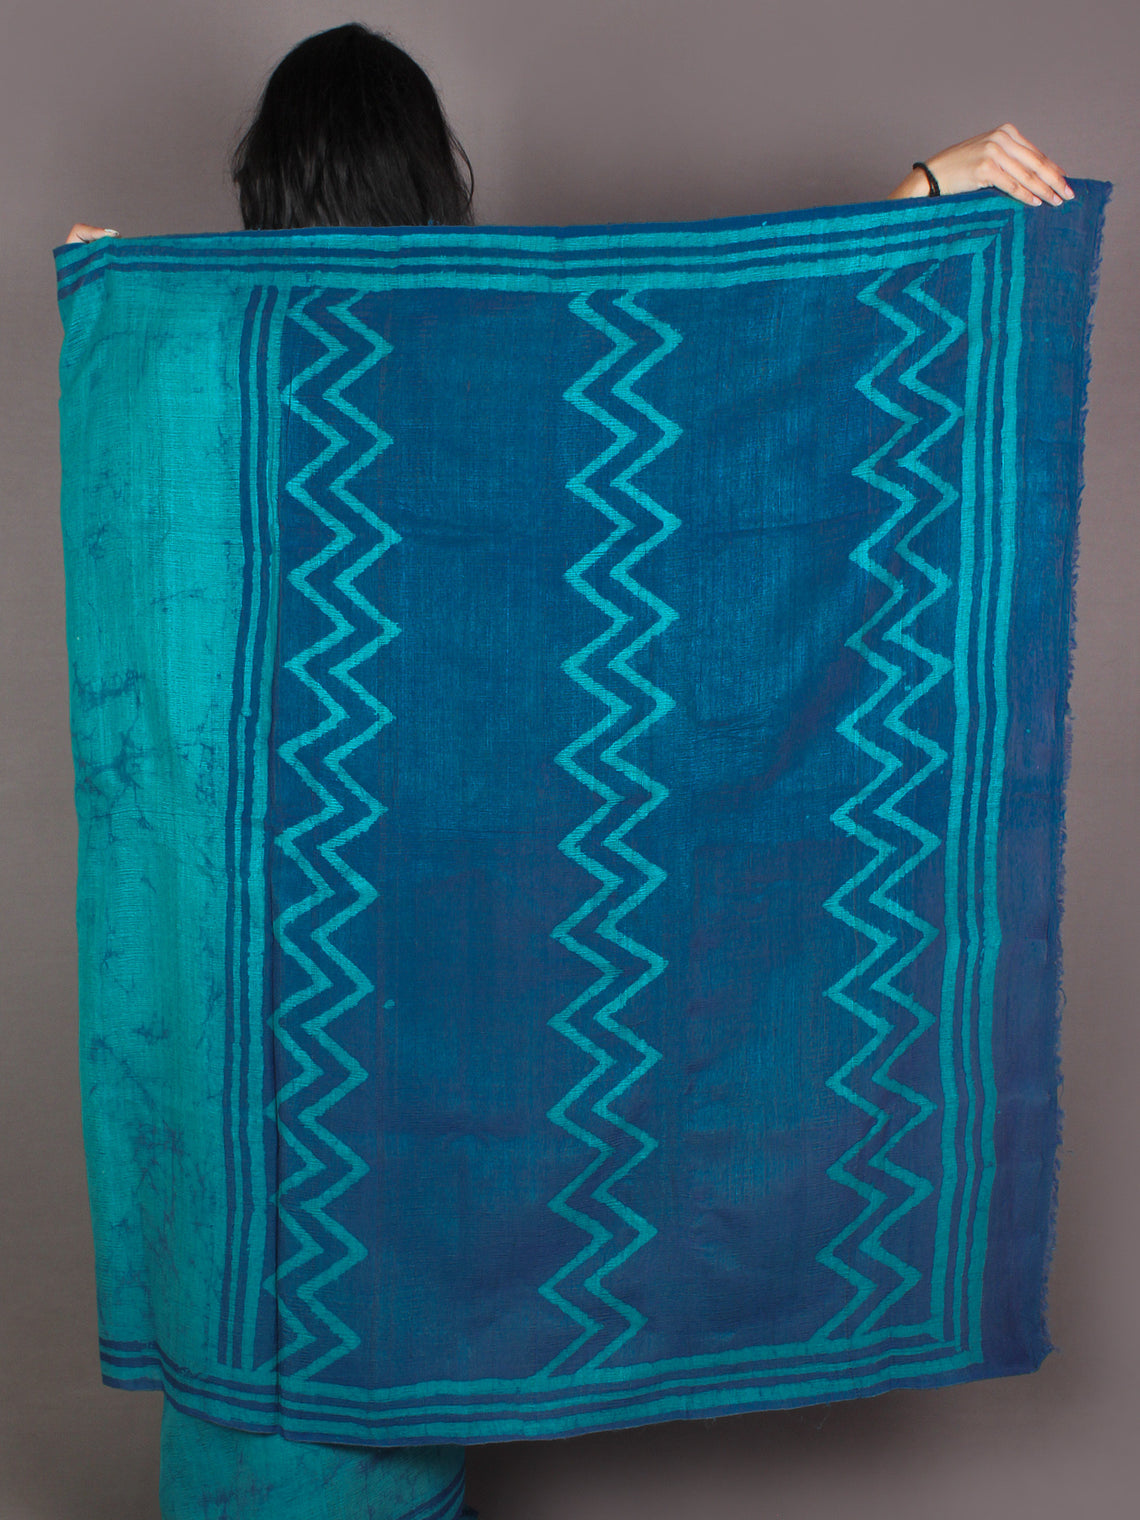 Tussar Handloom Silk Hand Block Printed & Painted Saree in Pine Green - S03170960